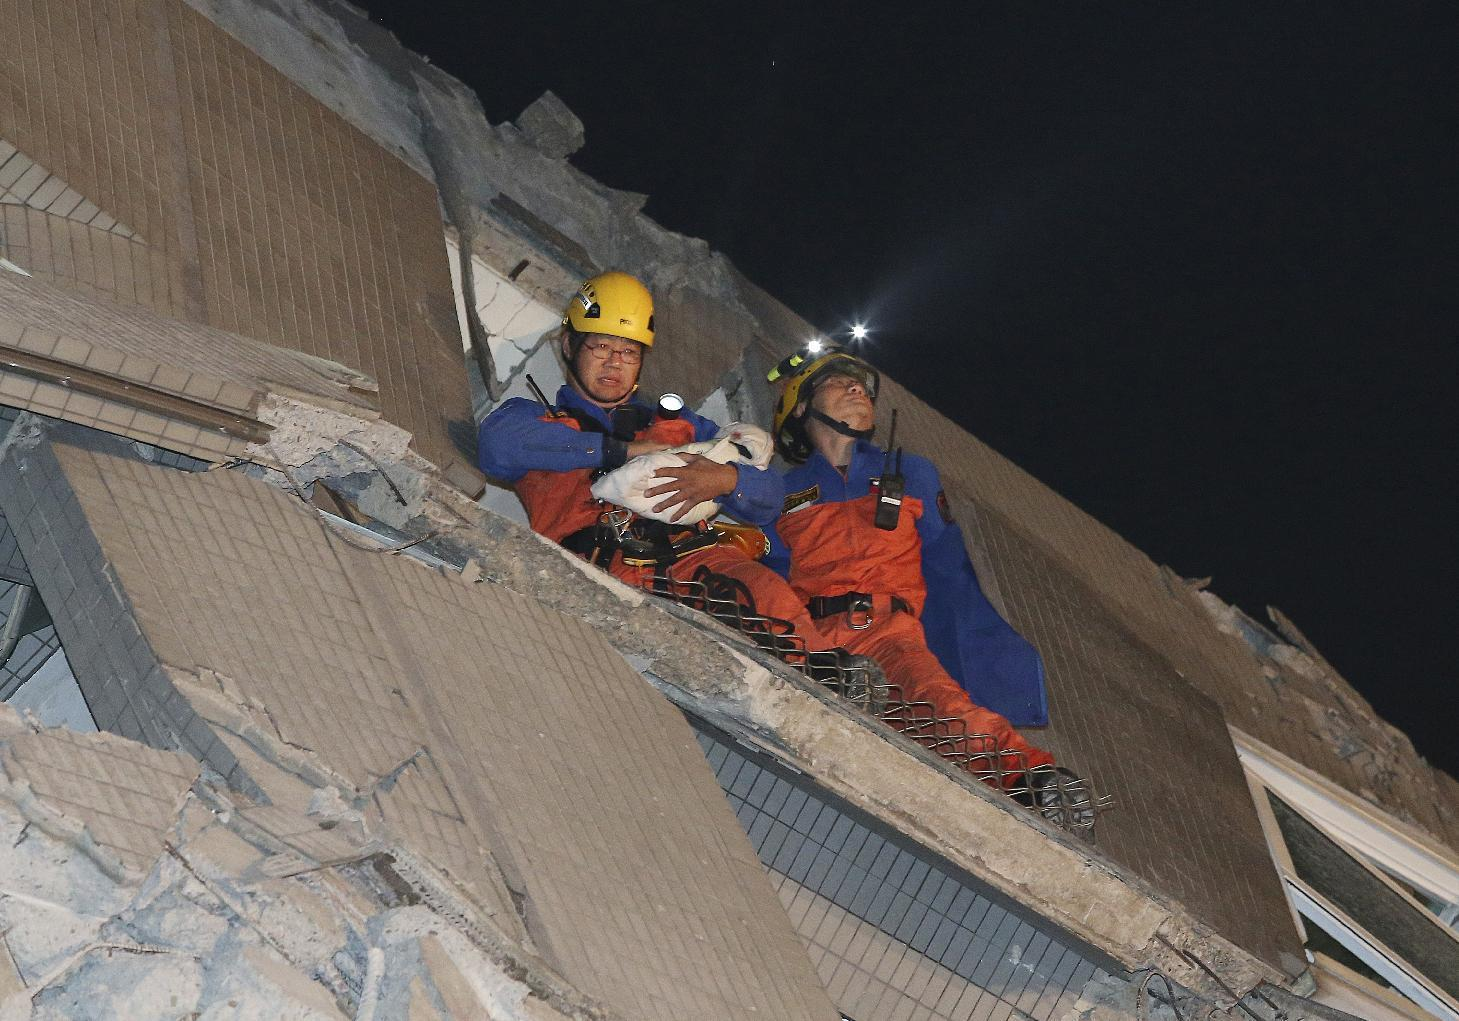 Strong quake hits Taiwan, killing 3; 221 rescued from rubble